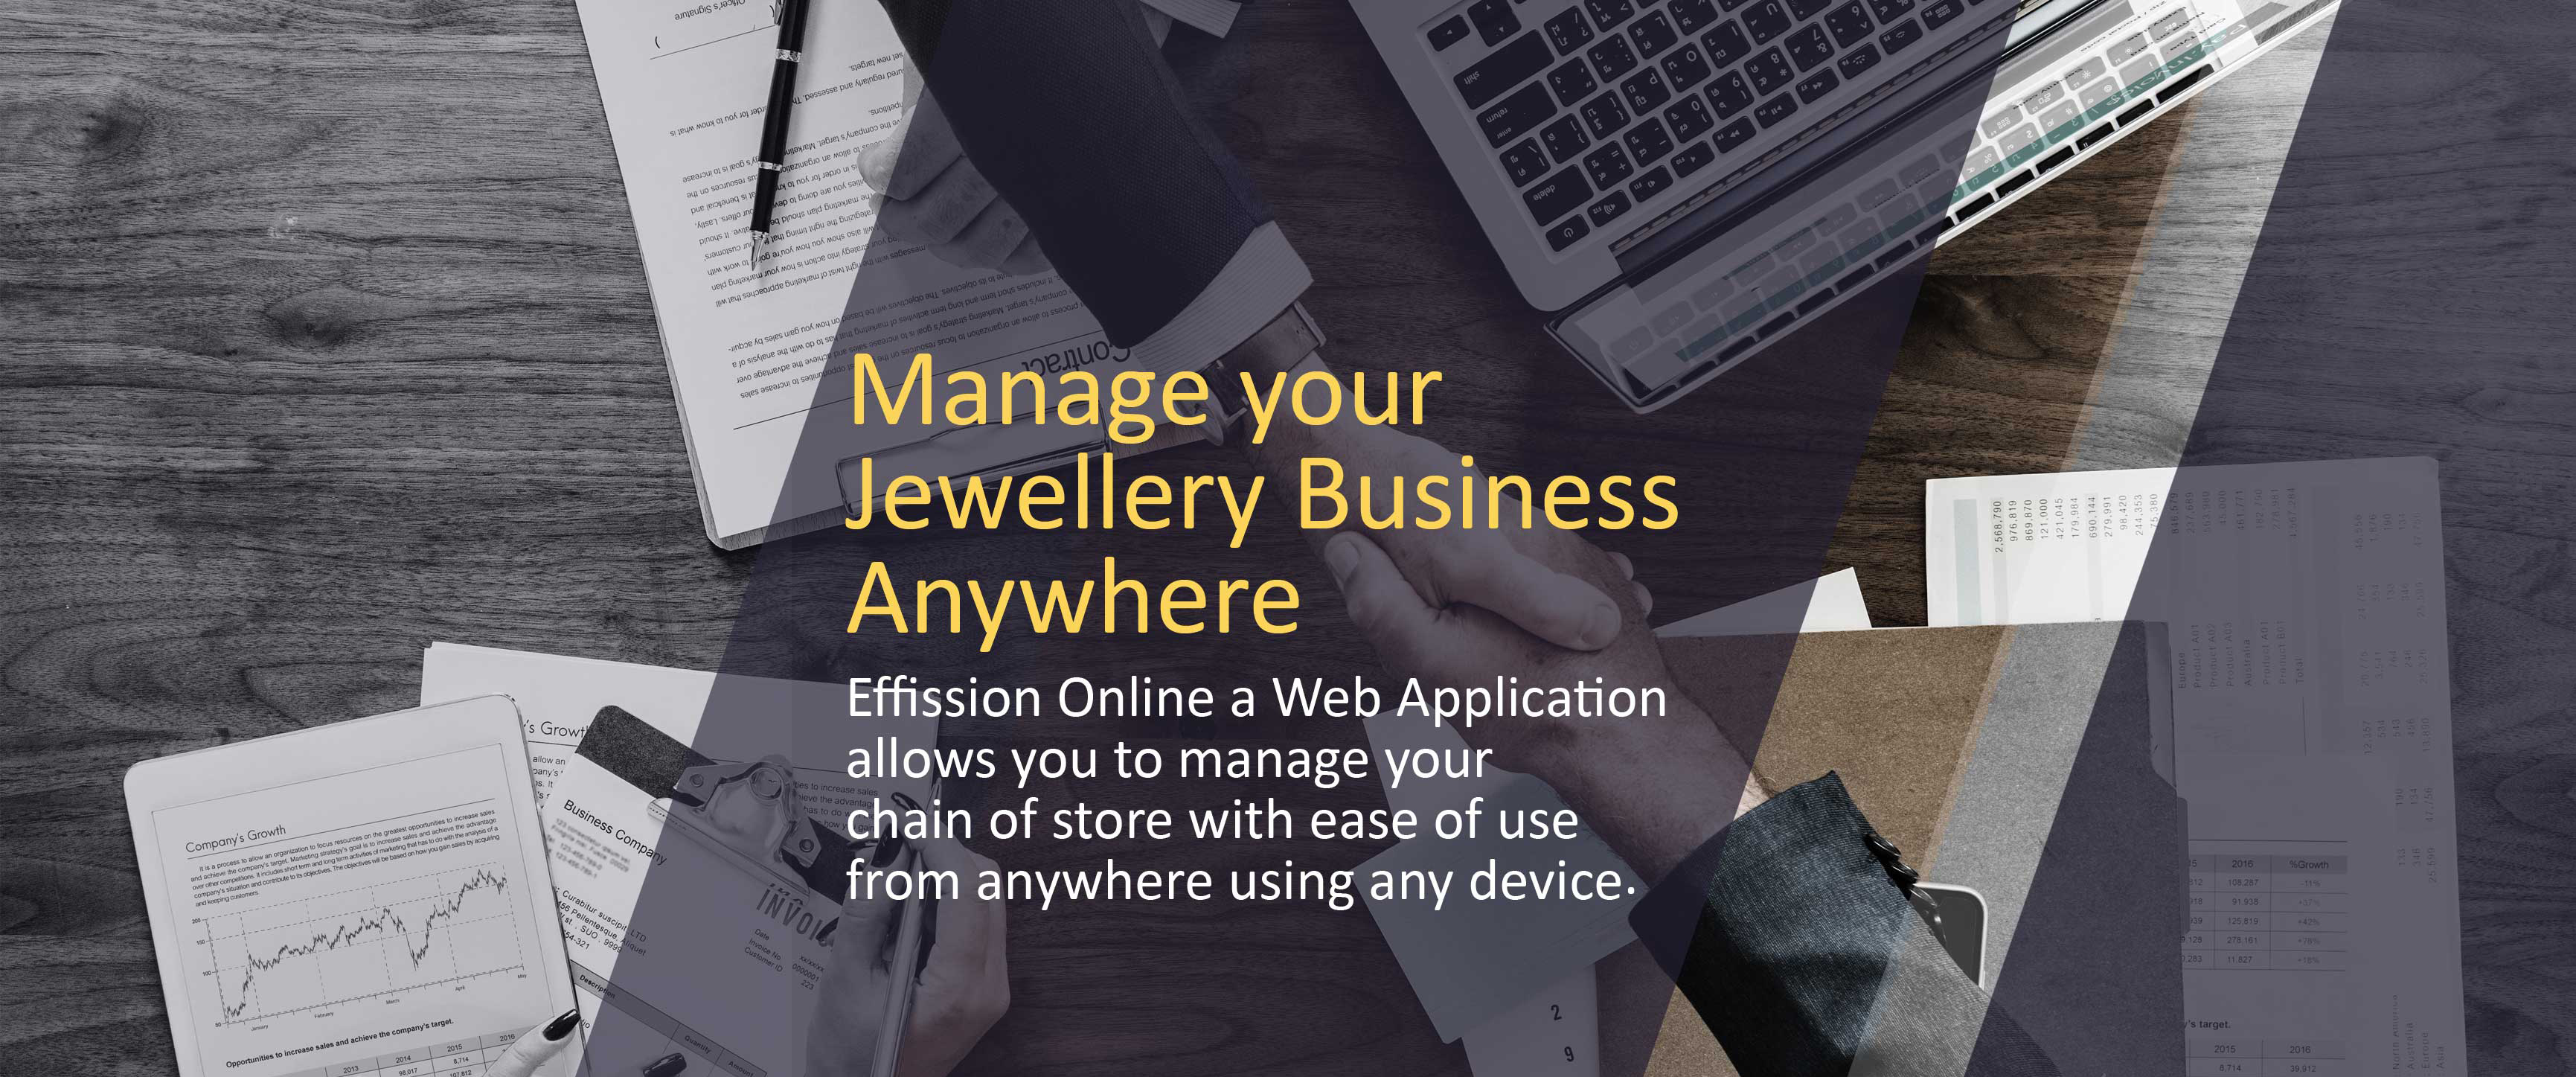 Cloud based jewellery erp software | Effission